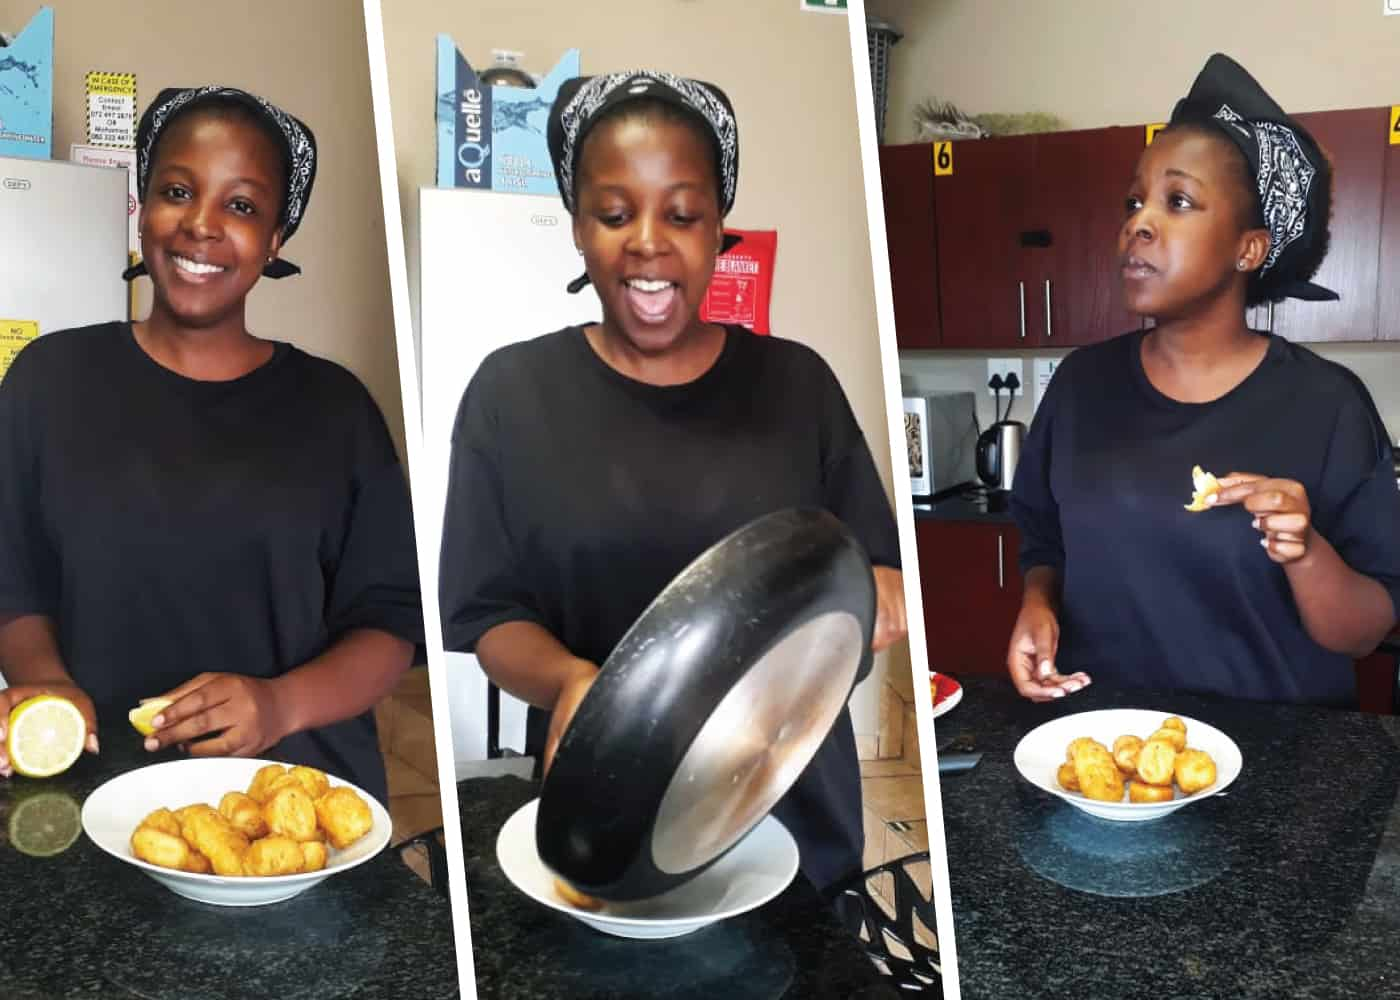 Xoliswa prepared a delicious plate of mushroom and fetta penne with steak on the side.